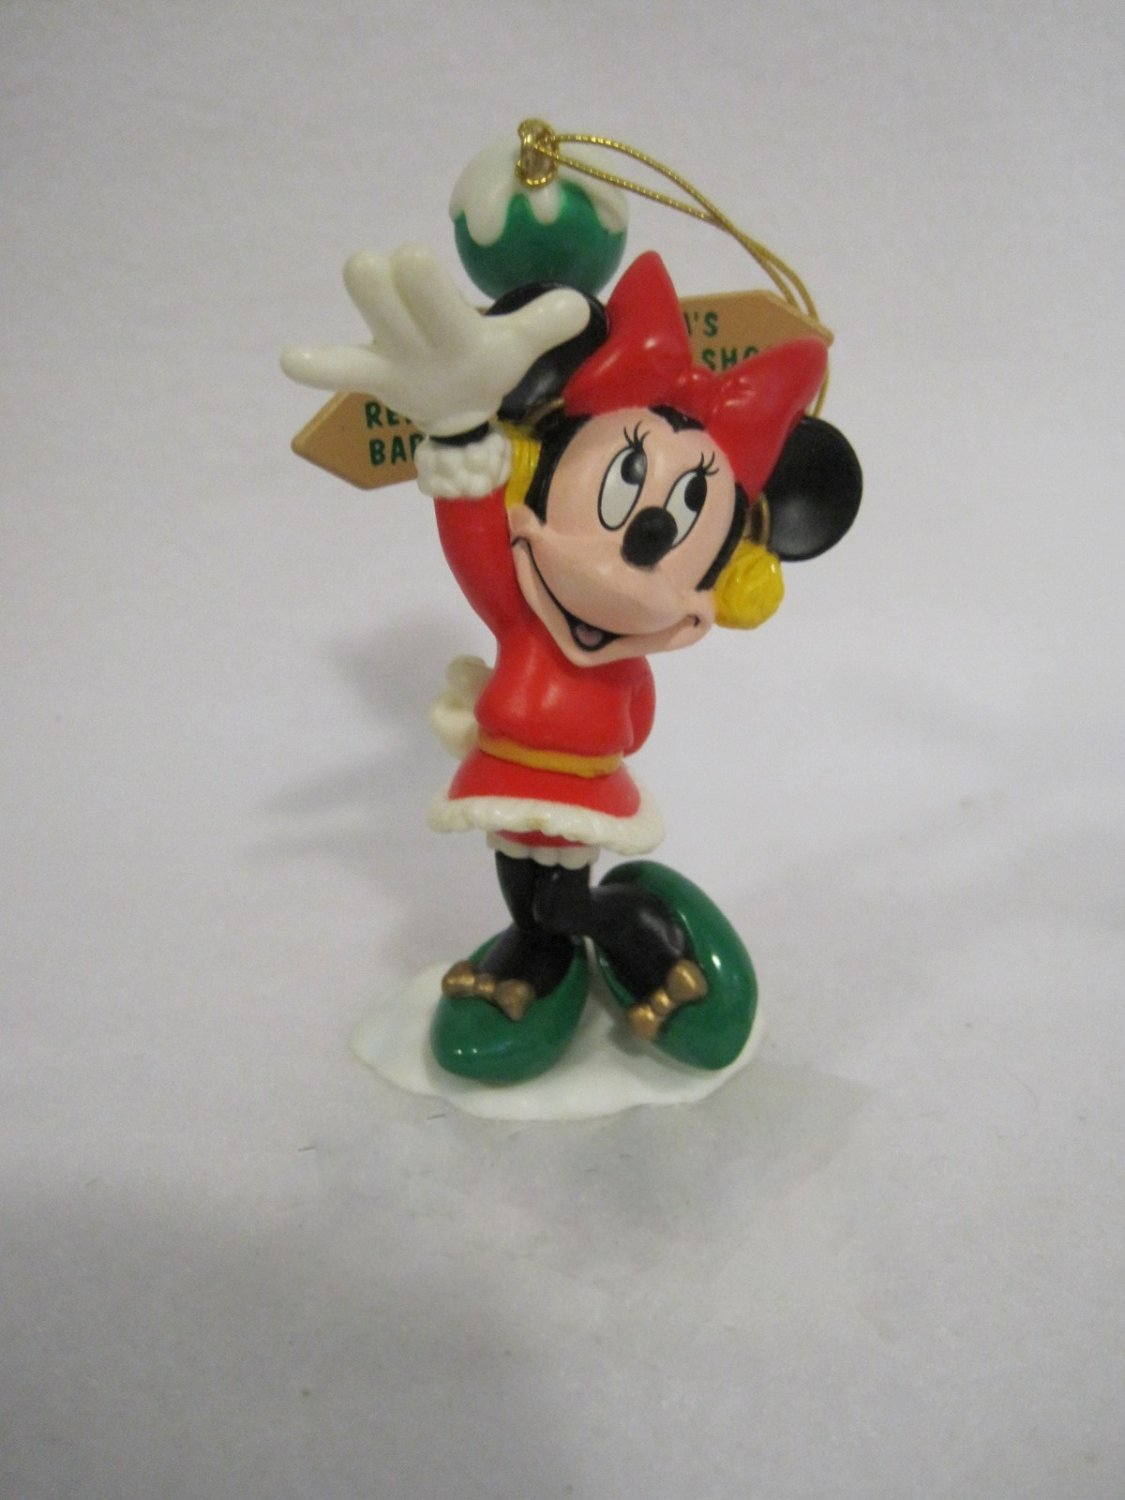 Enesco Hanging Tree Ornament Minnie out for a walk, waving.